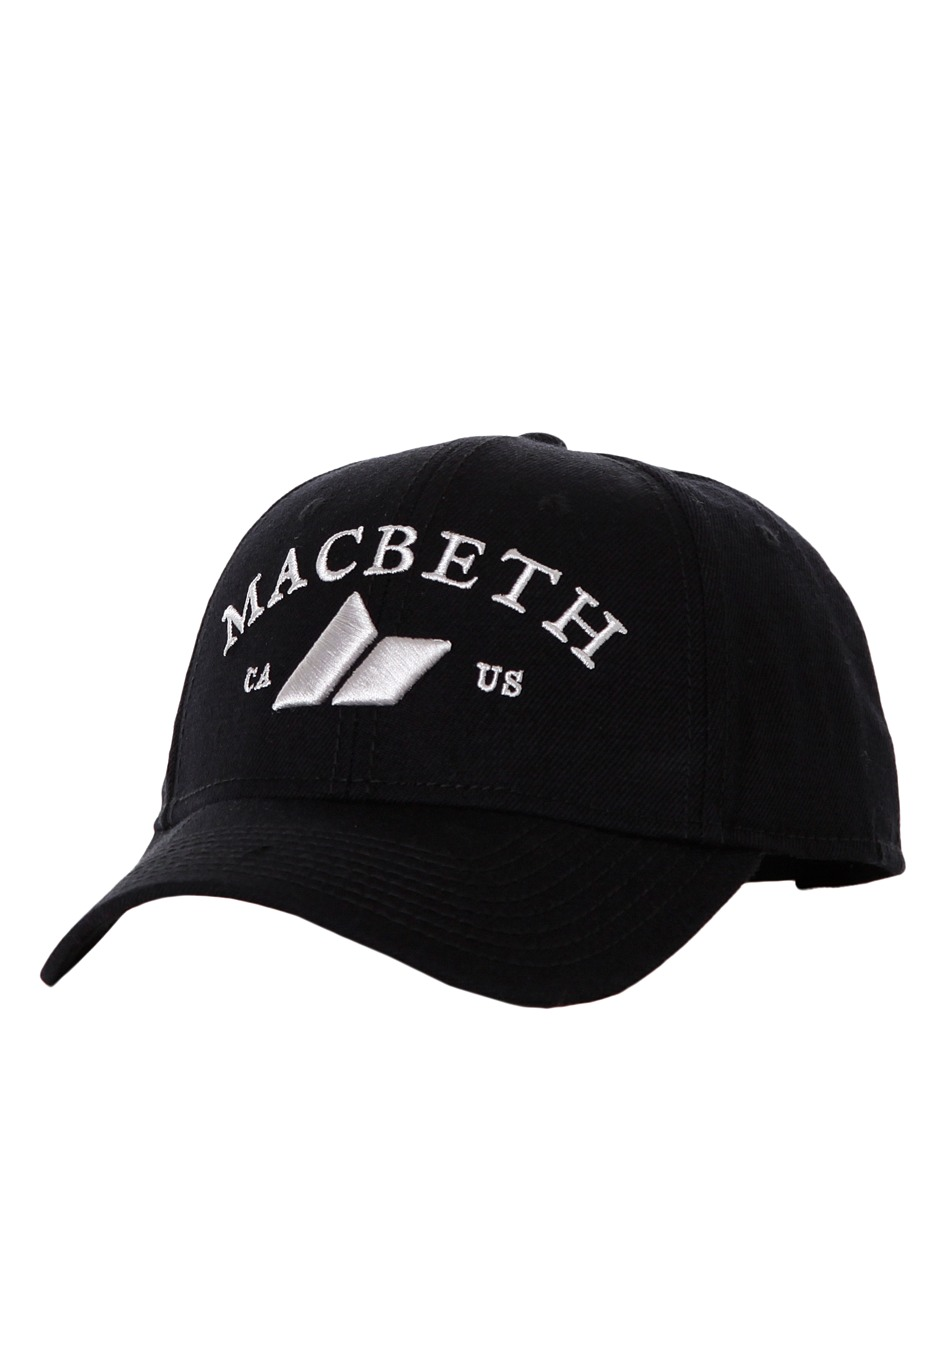 e0fd65172 Macbeth - CA Black/Cement Snapback - Cap